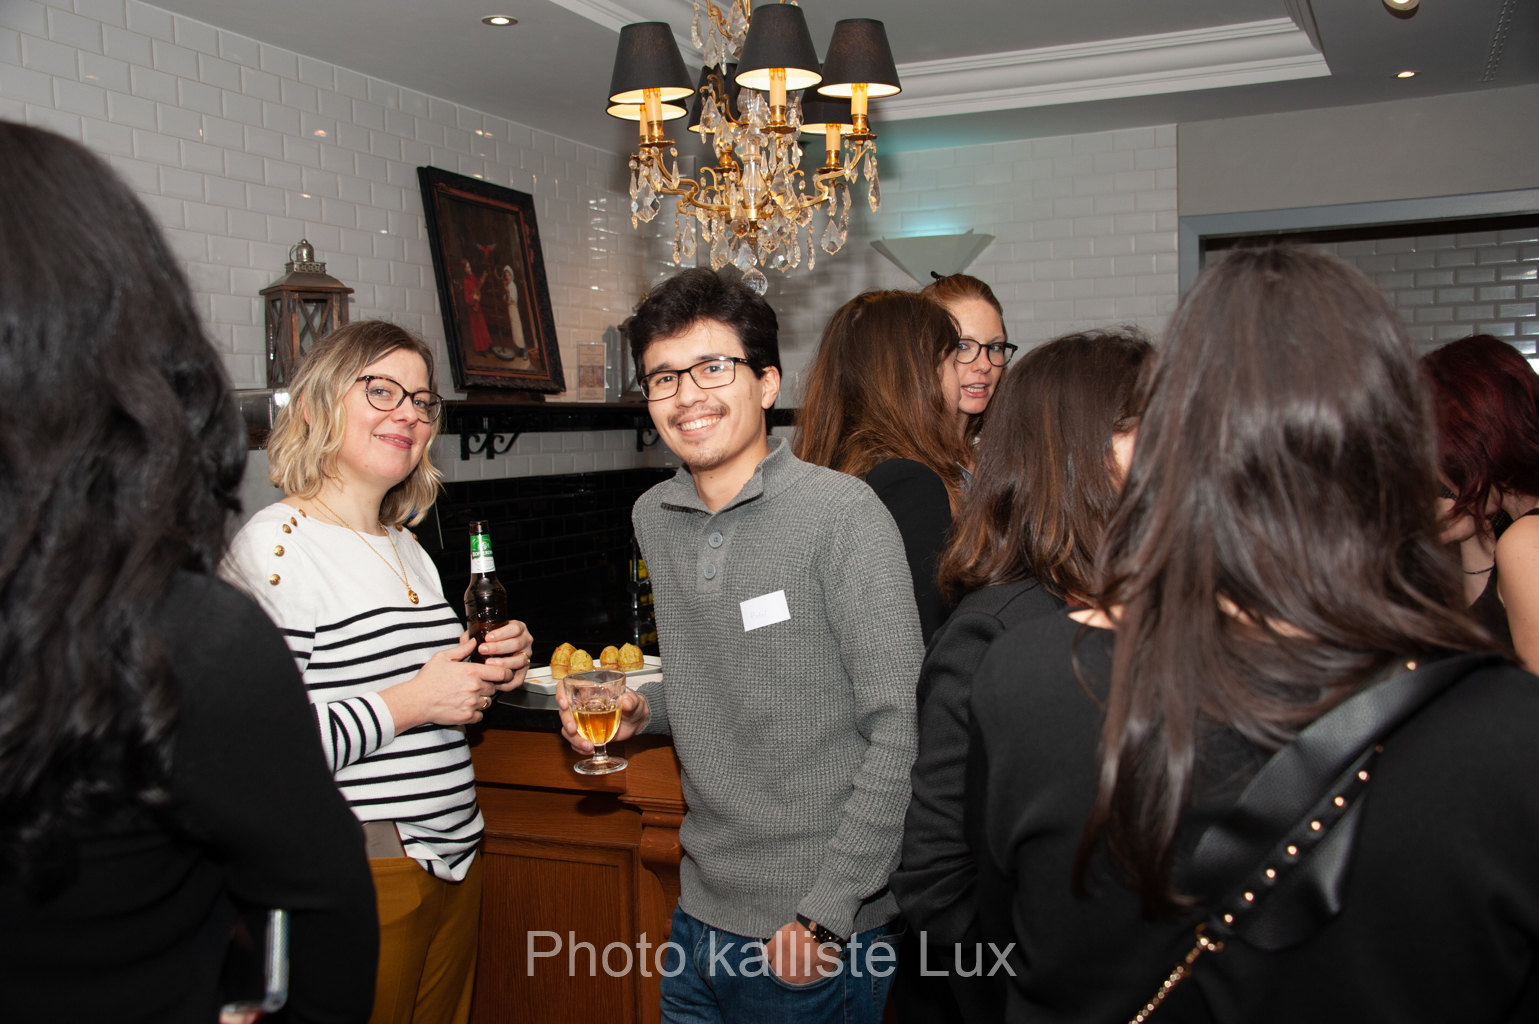 drink with a marketer luxembourg metz communication fédération association communauté afterwork job lunch